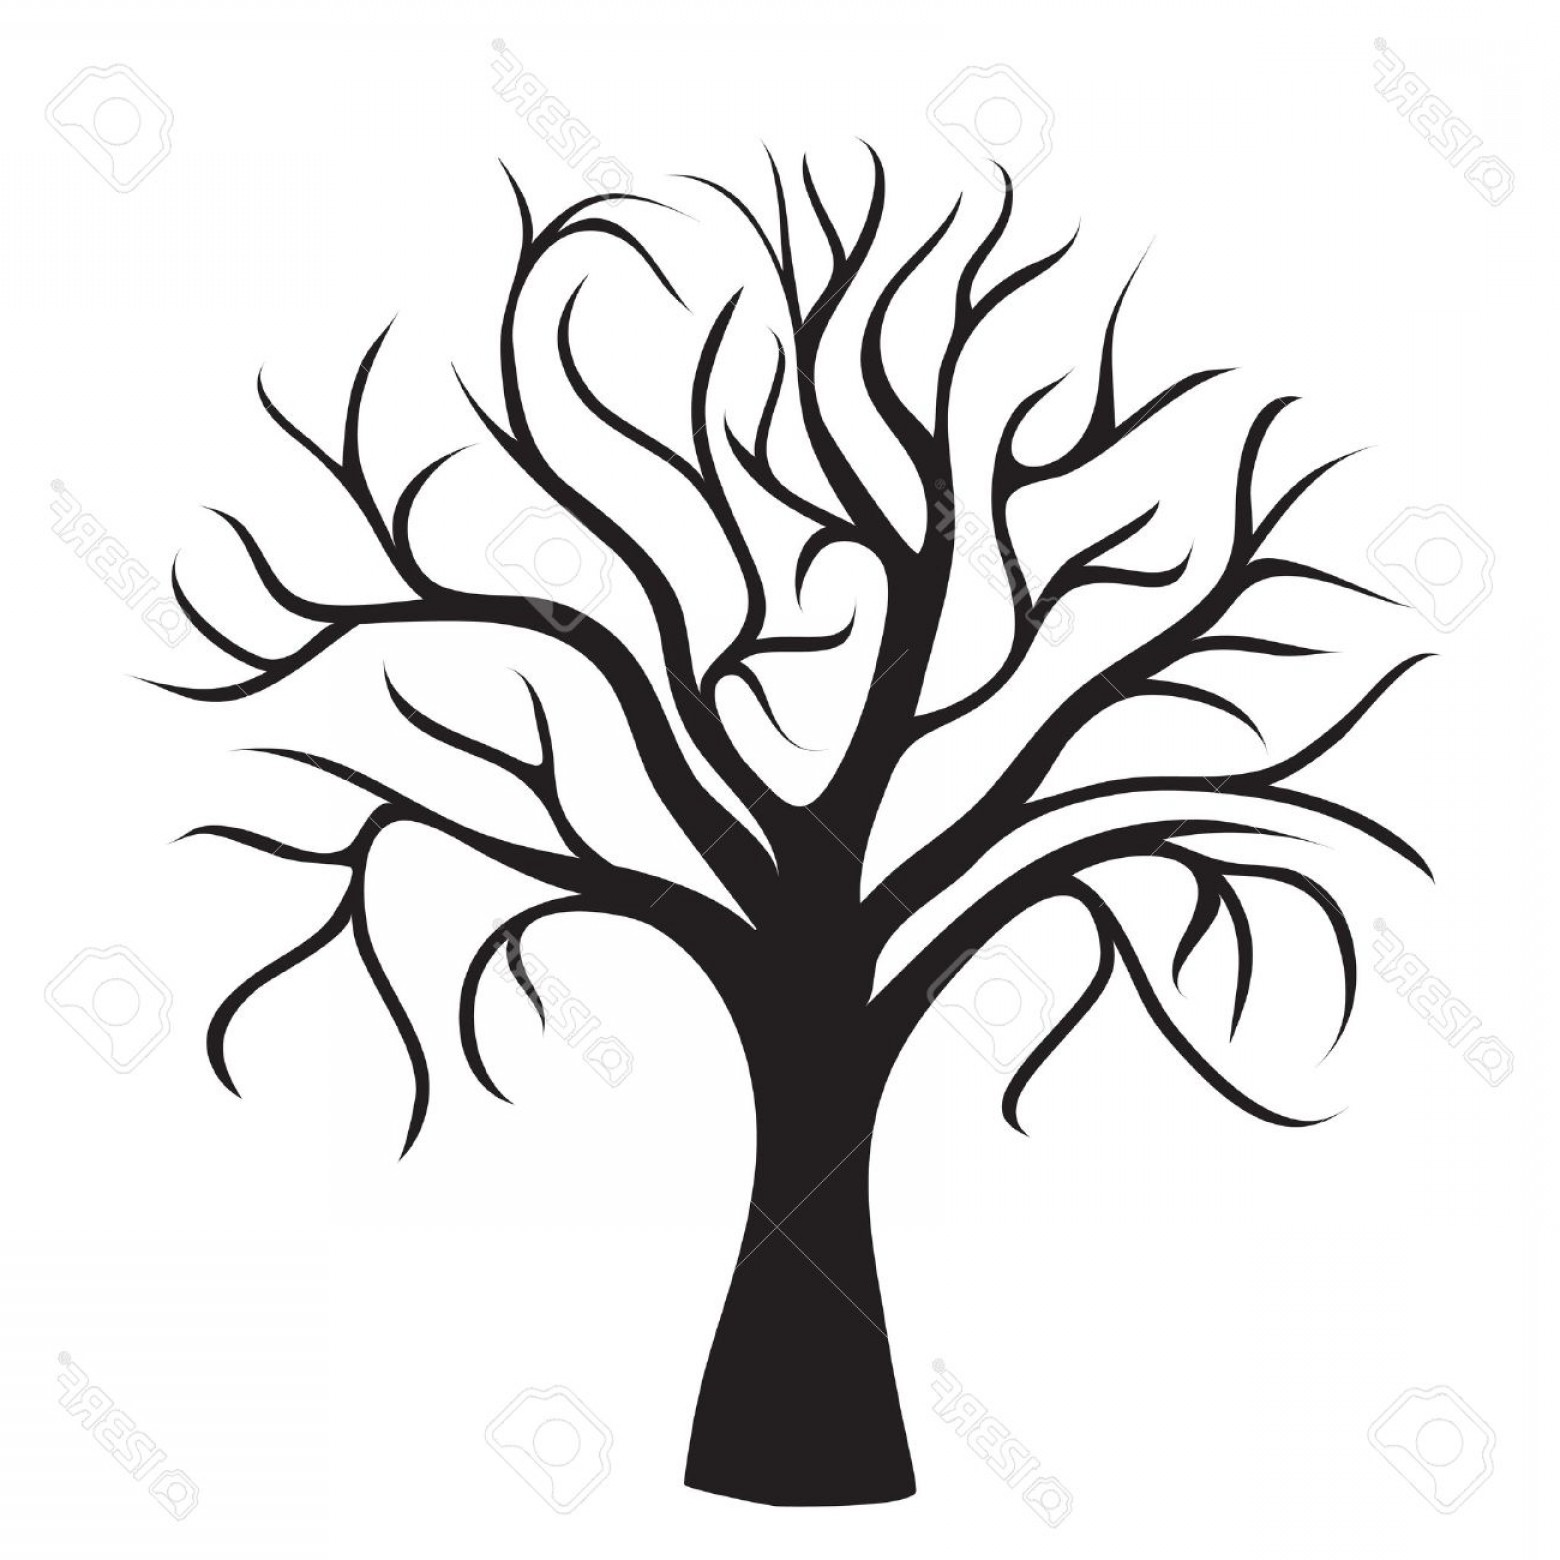 Tree Without Leaves Clipart Black And White 10 Free